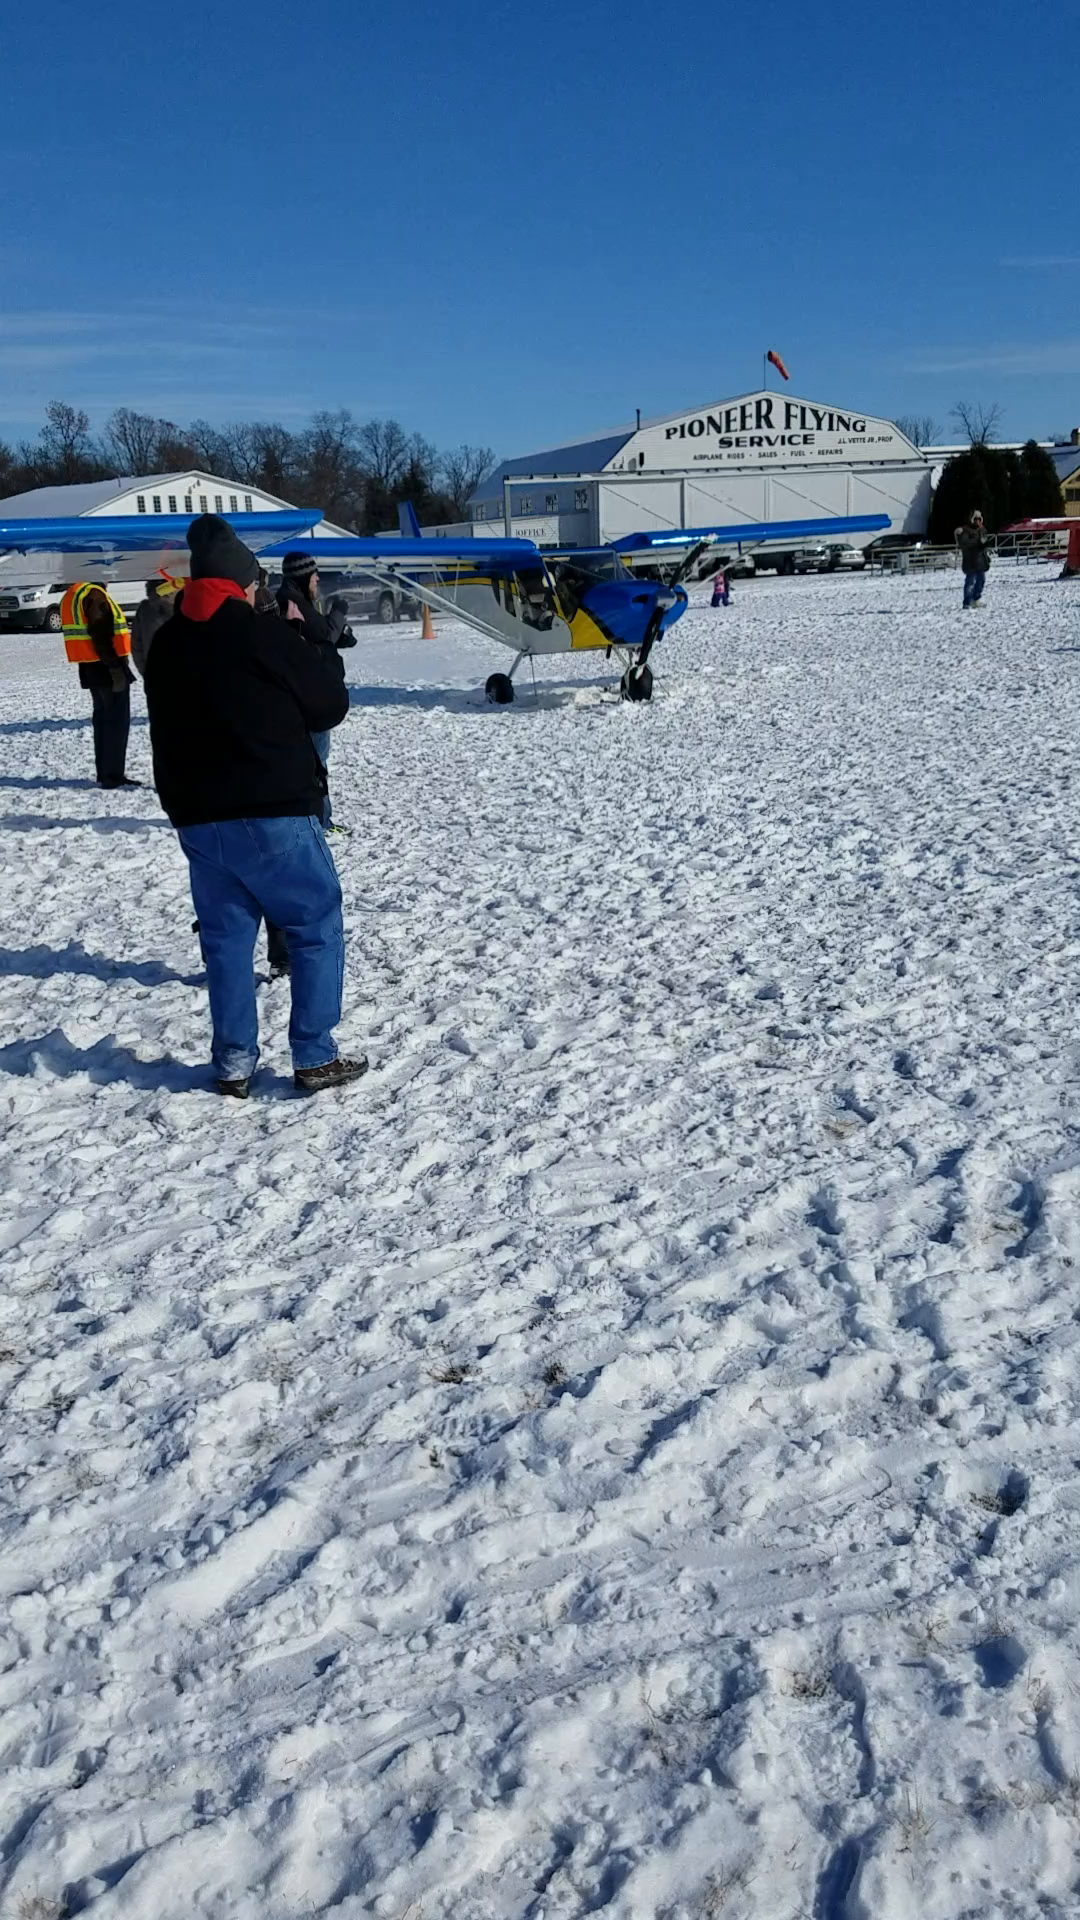 STOL CH 750 on skis